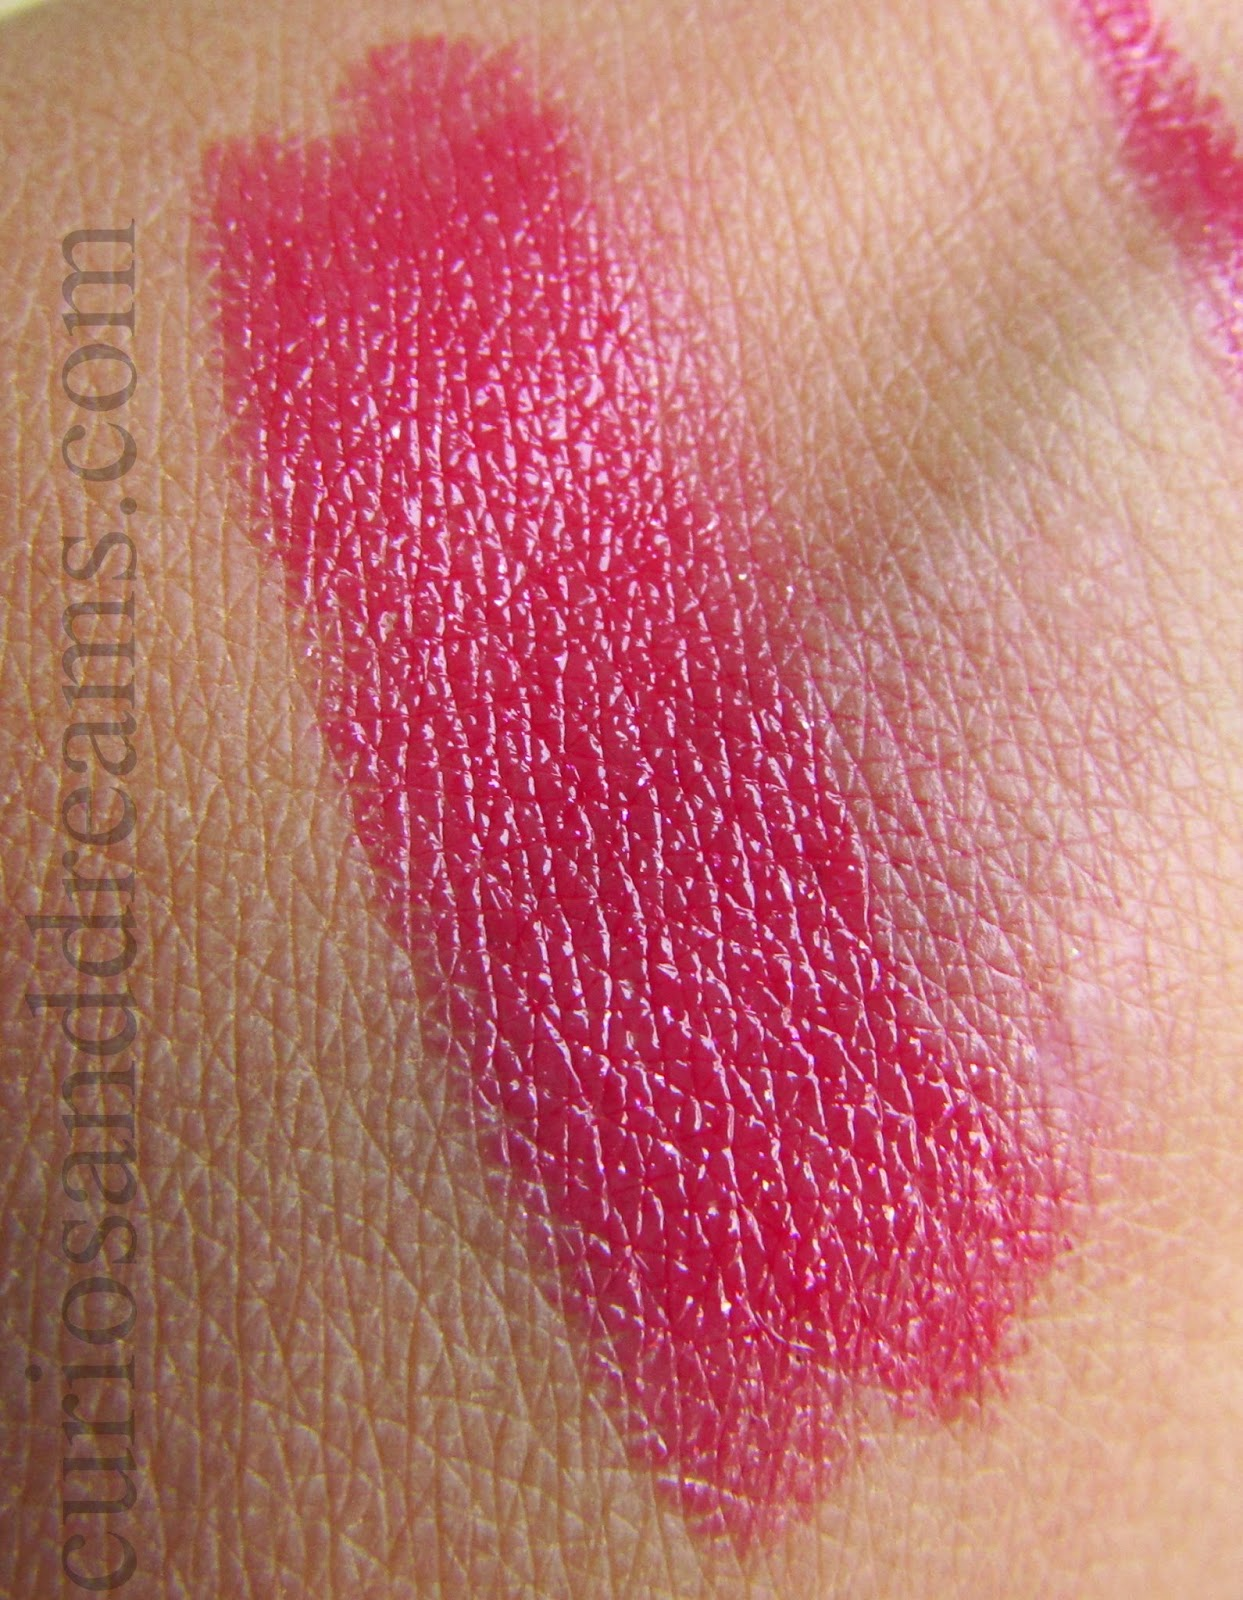 L'Oreal Glam Shine Balmy Gloss Pomegranate Punch Review, L'Oreal Balmy Gloss Pomegranate Punch Review, L'Oreal Pomegranate Punch Review